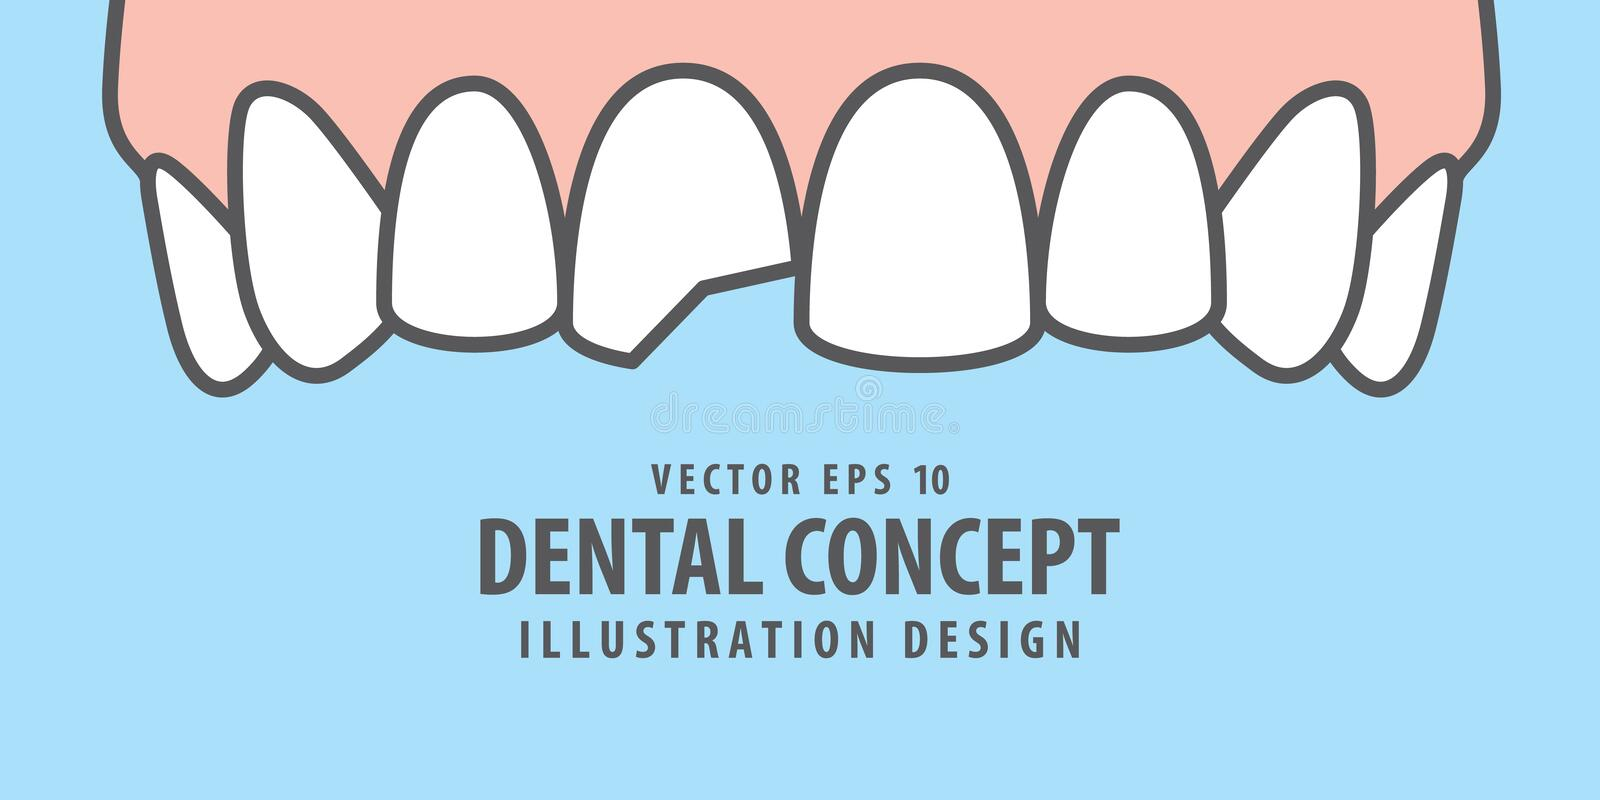 Banner Upper Chipped tooth illustration vector on blue background. Dental concept. royalty free illustration